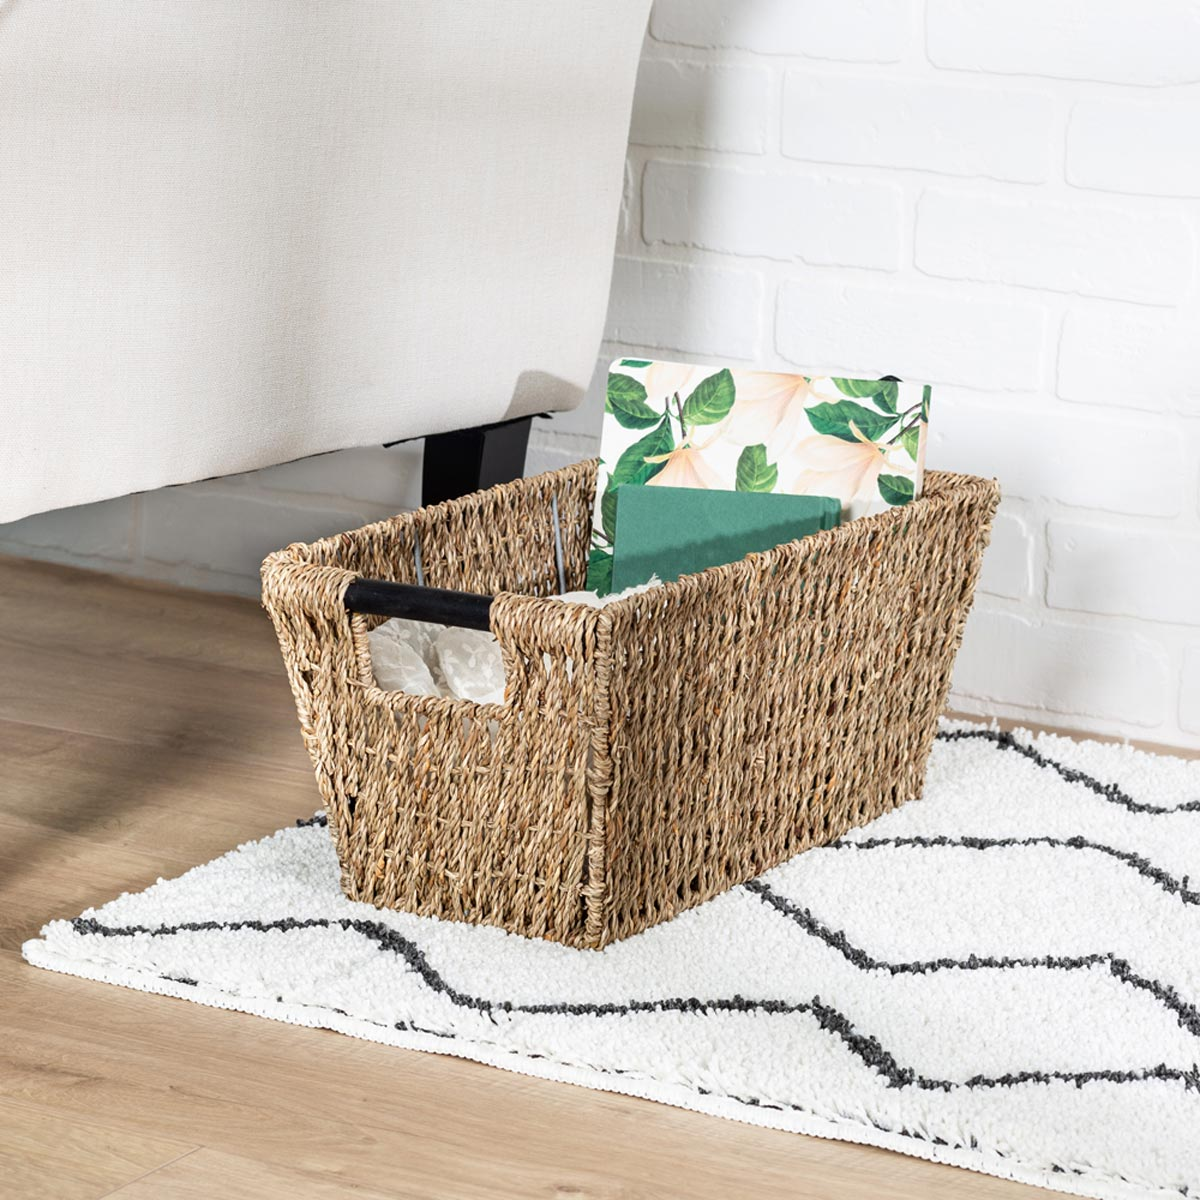 17 in. x 9 in. x 8 in. Seagrass Storage Basket with Handles, Medium